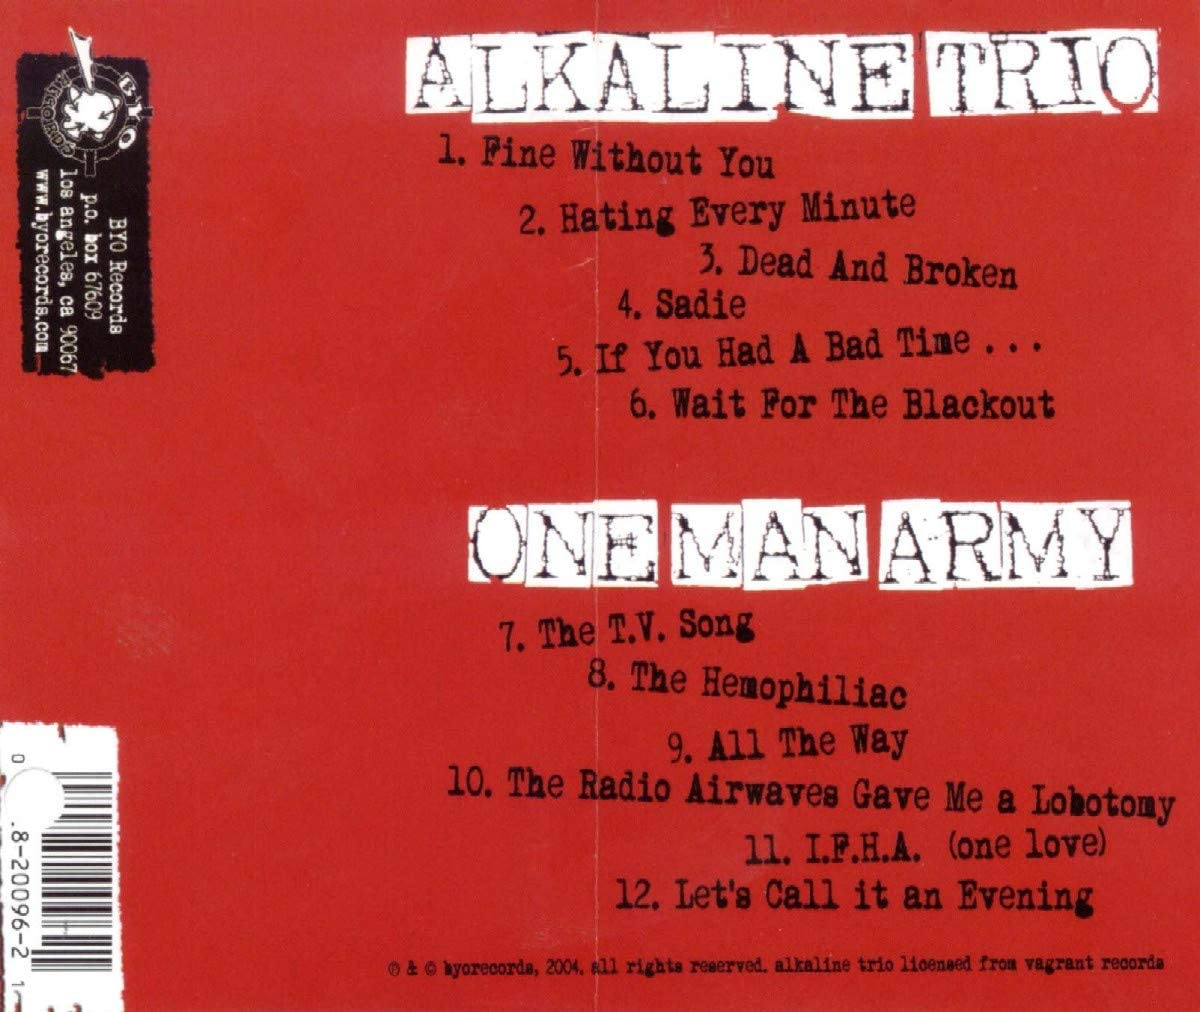 Alkaline trio fine without you